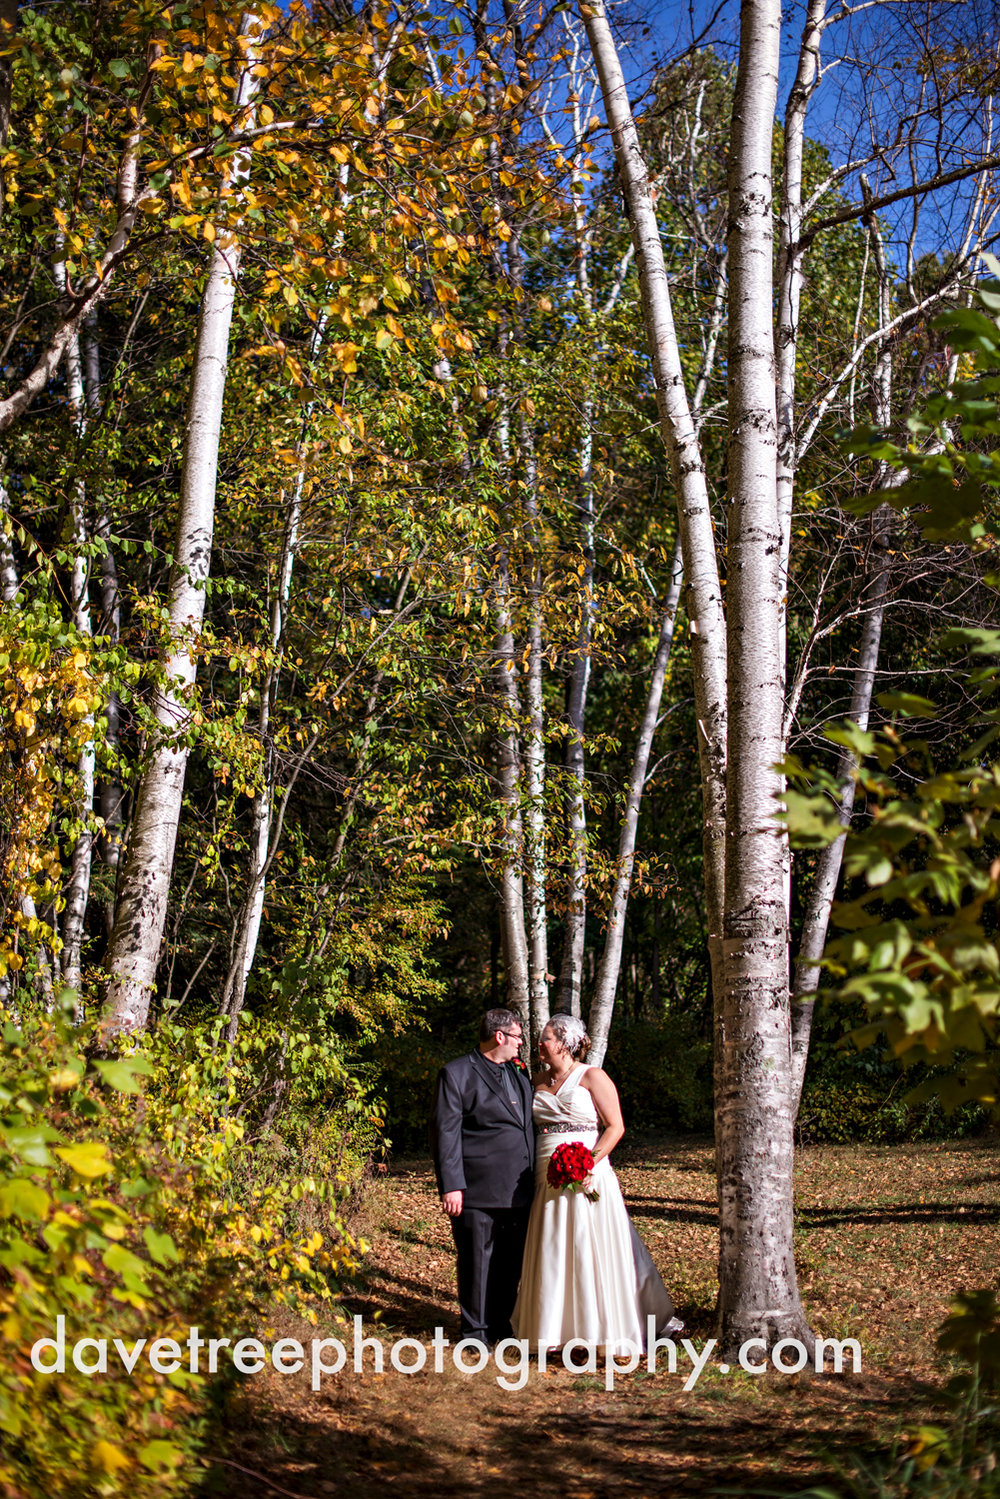 hillsdale_wedding_photographer_hillsdale_wedding_16.jpg